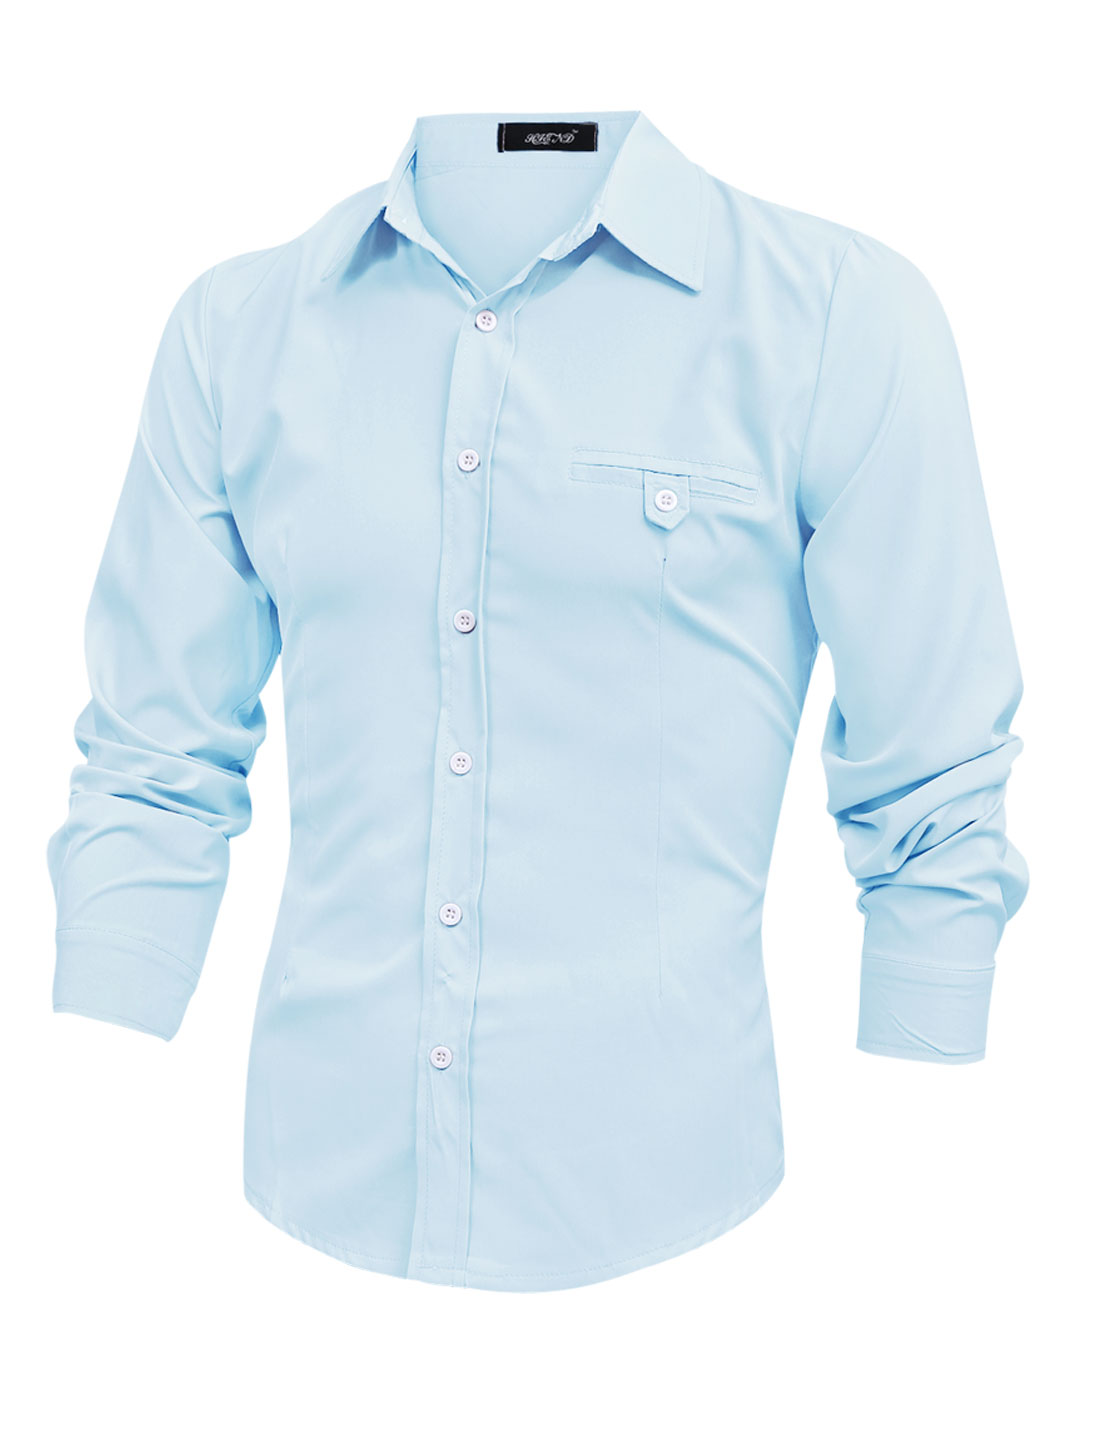 Men Long Sleeve Button Down Mock Welt Button Pocket Shirt Light Blue M